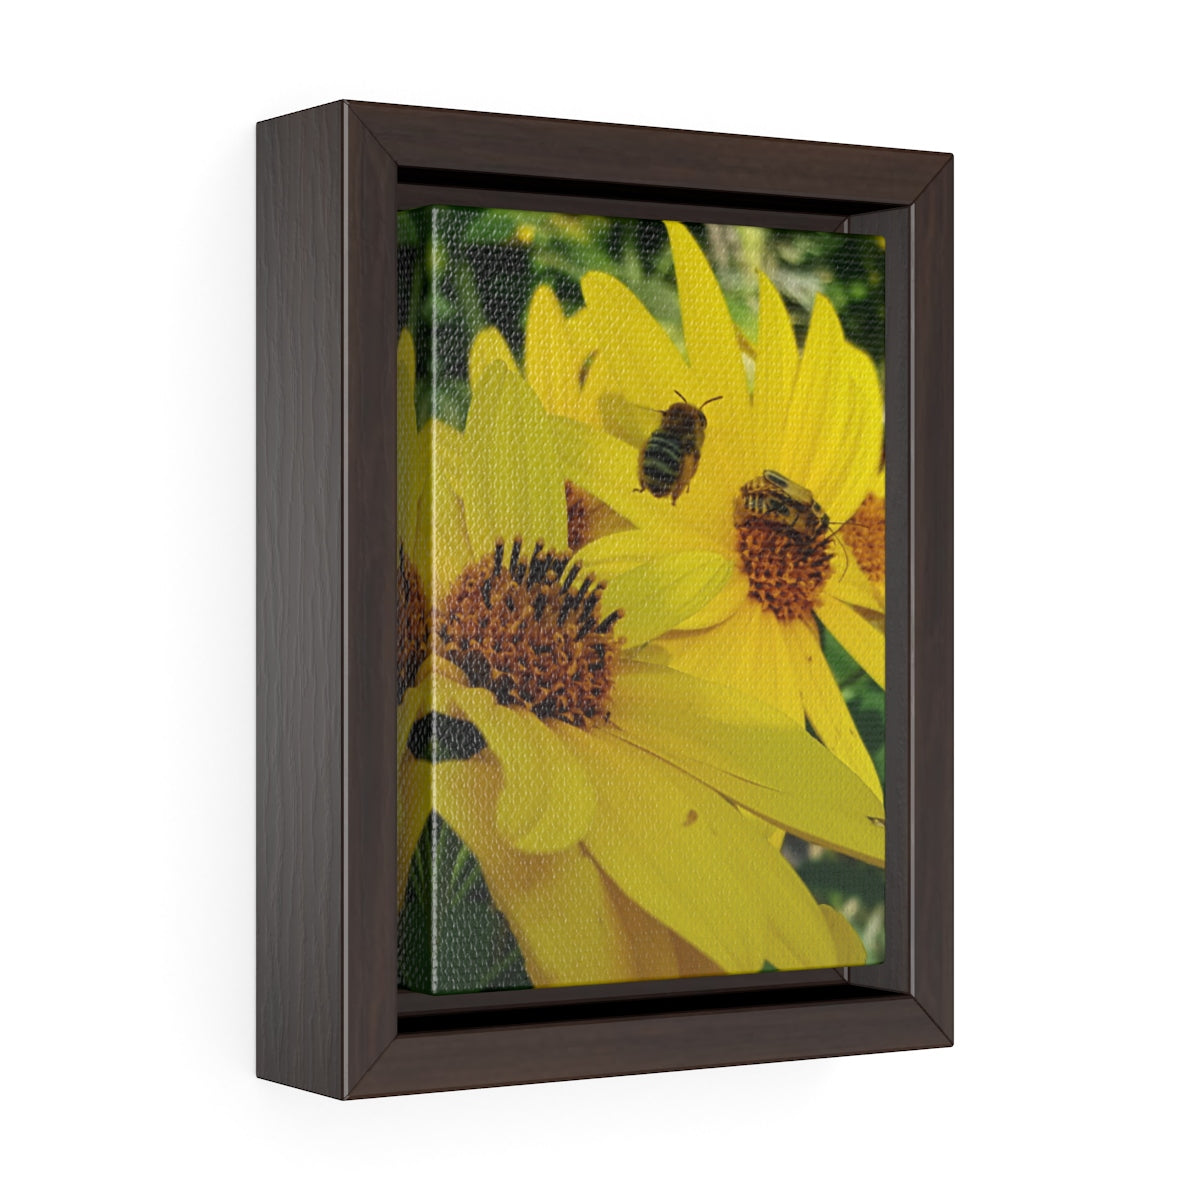 Beehave Vertical Framed Premium Gallery Wrap Canvas